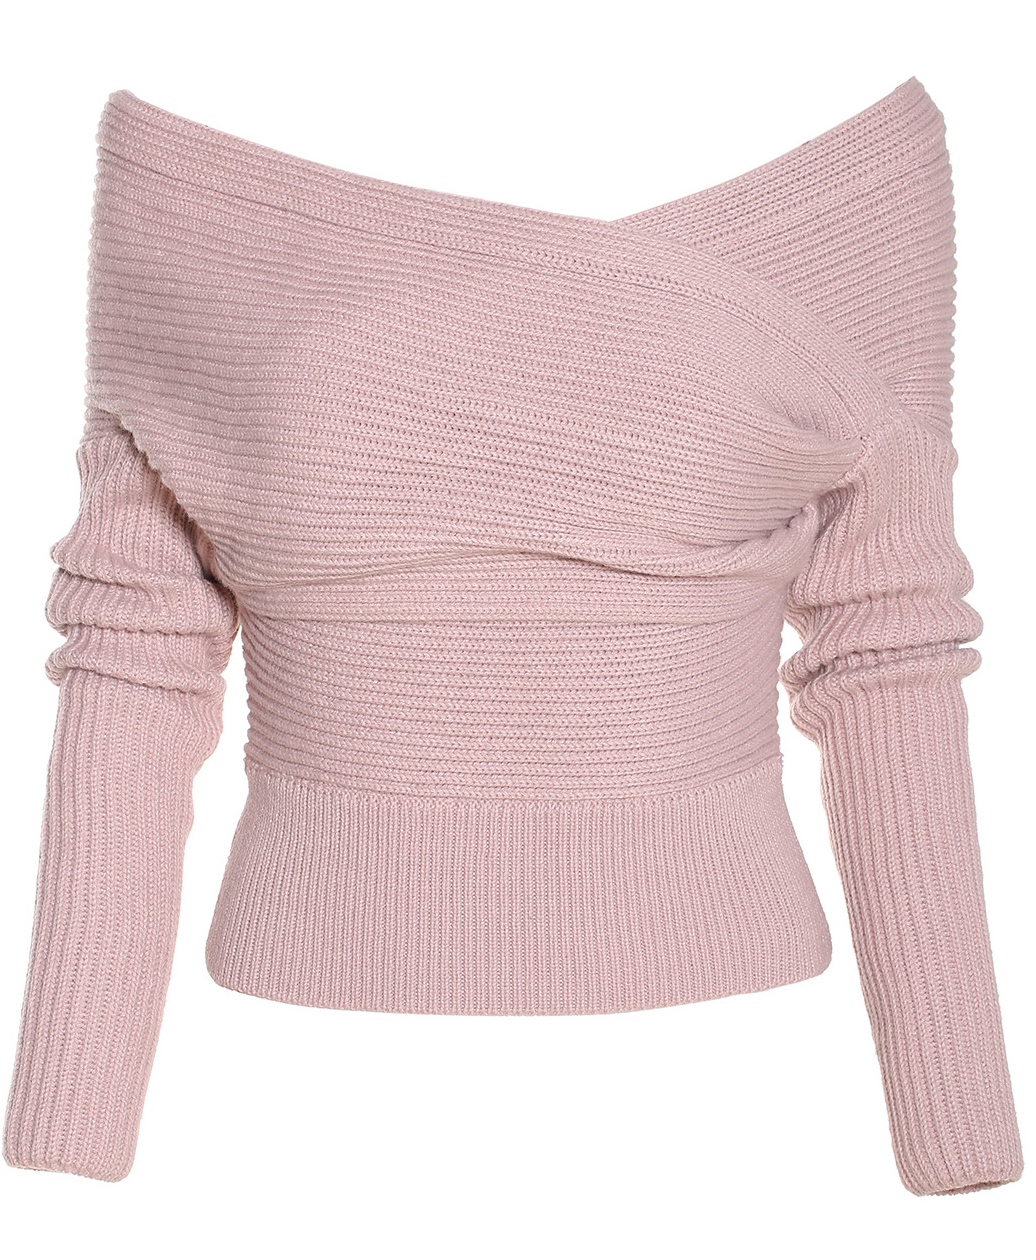 boat neck wrap front pink sweater mobile site tzhnylr